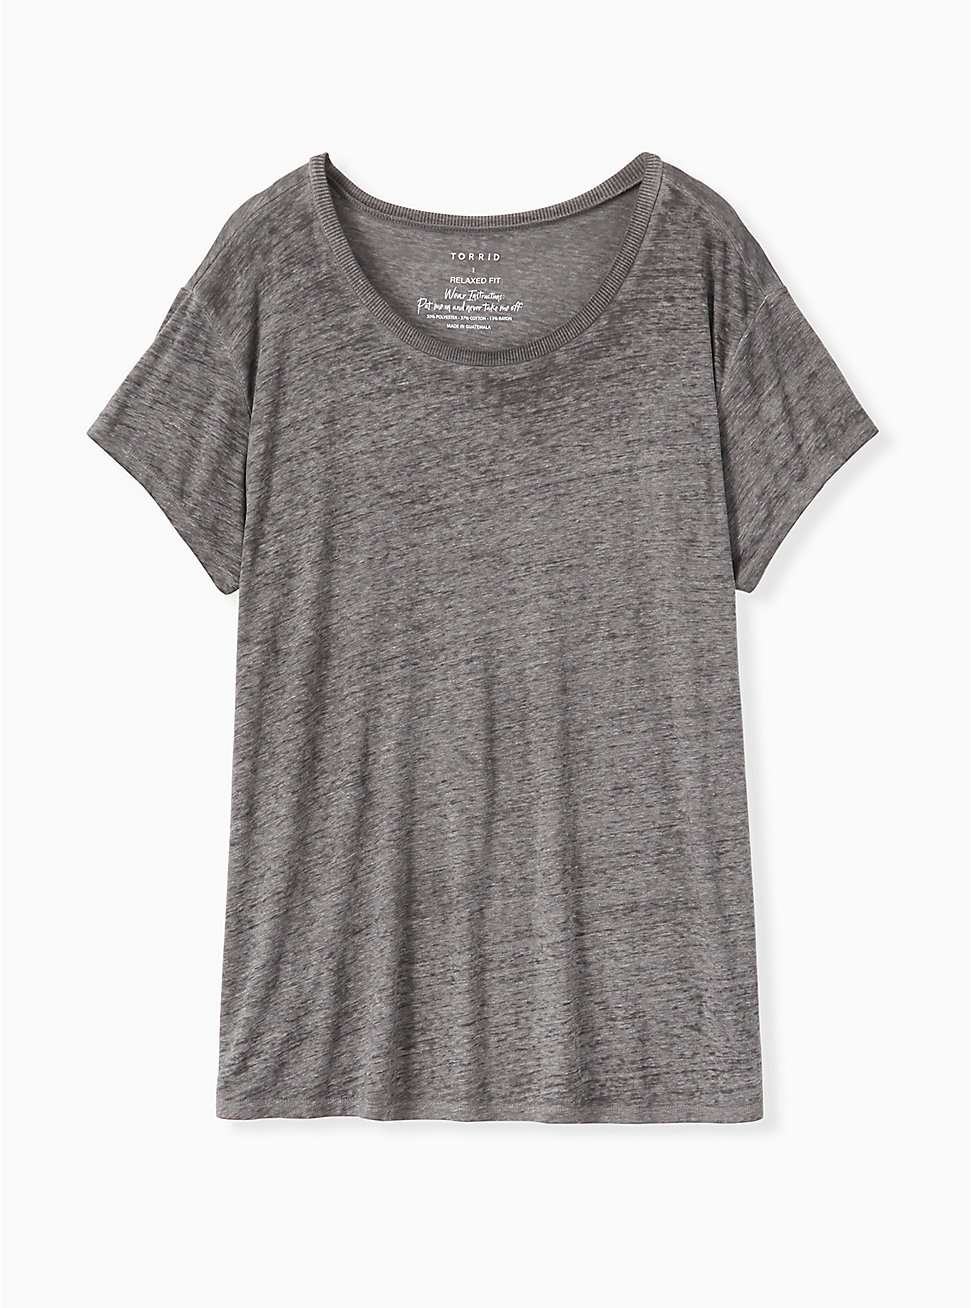 Relaxed Fit Crew Tee - Vintage Burnout Grey, HEATHER GREY, hi-res